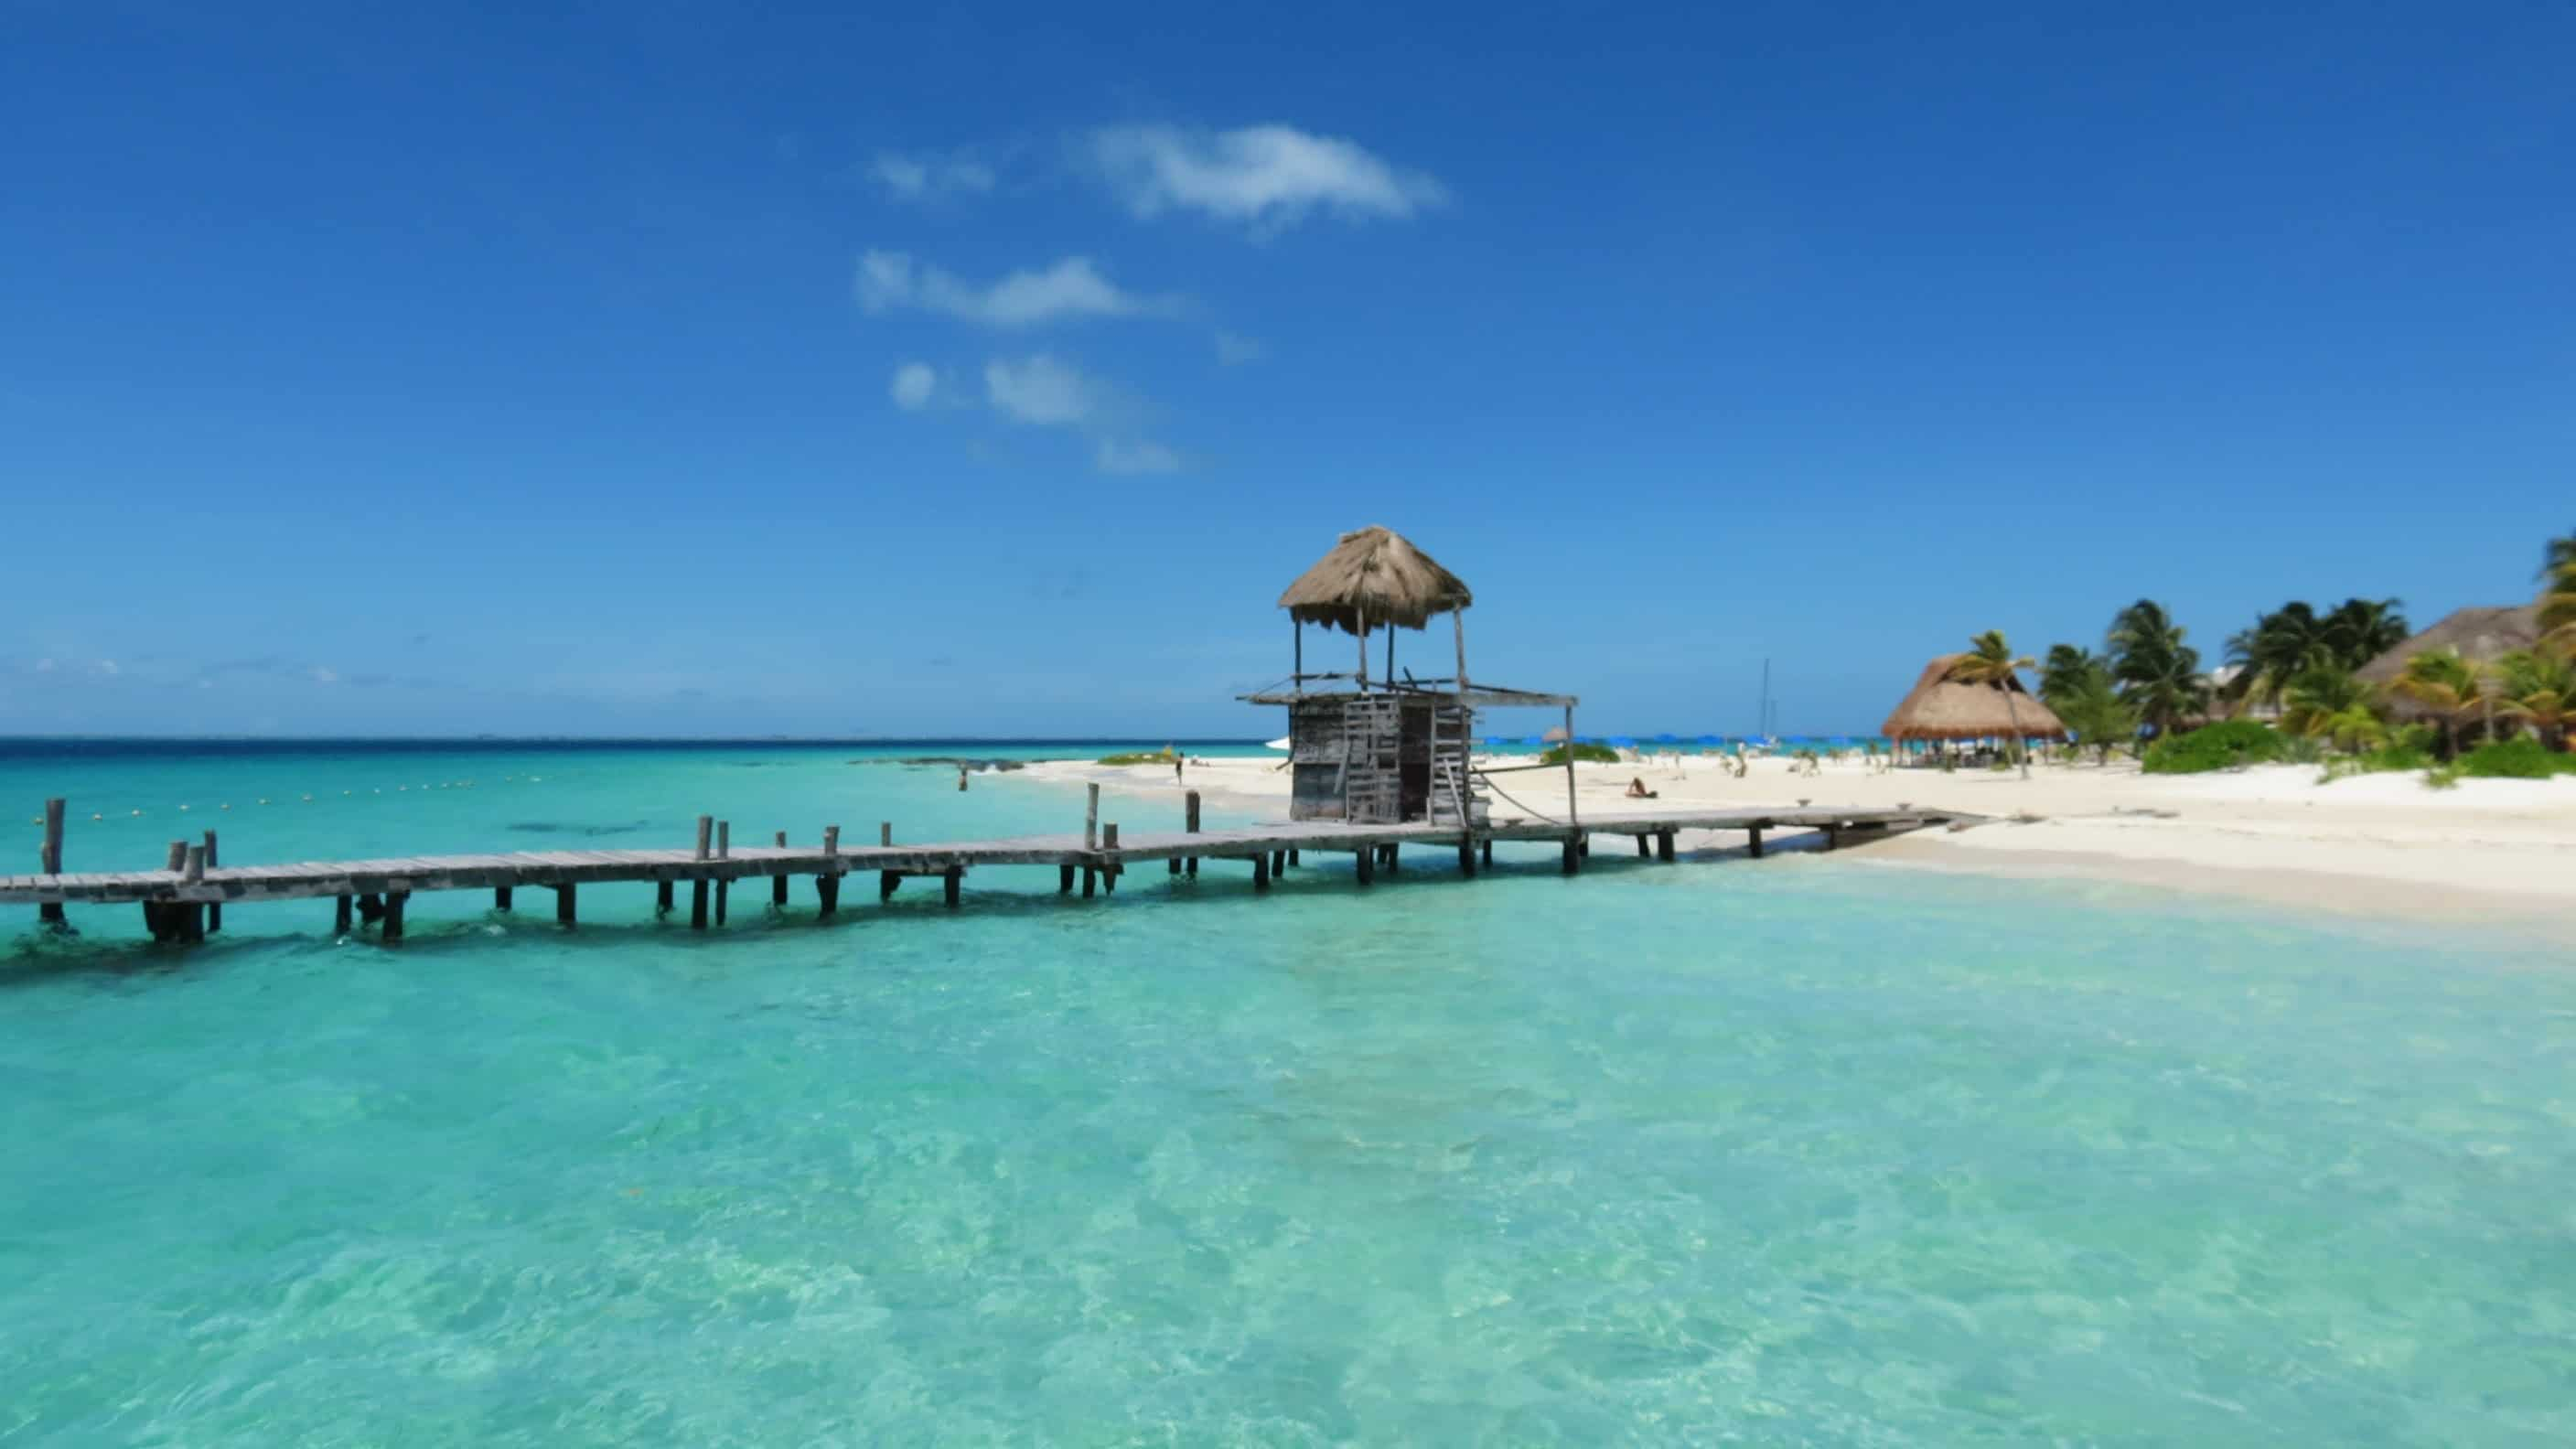 Playa Norte, Mexico, best beaches of Mexico, Mexico's best beaches, Mexico Beaches, Isla Mujeras beaches